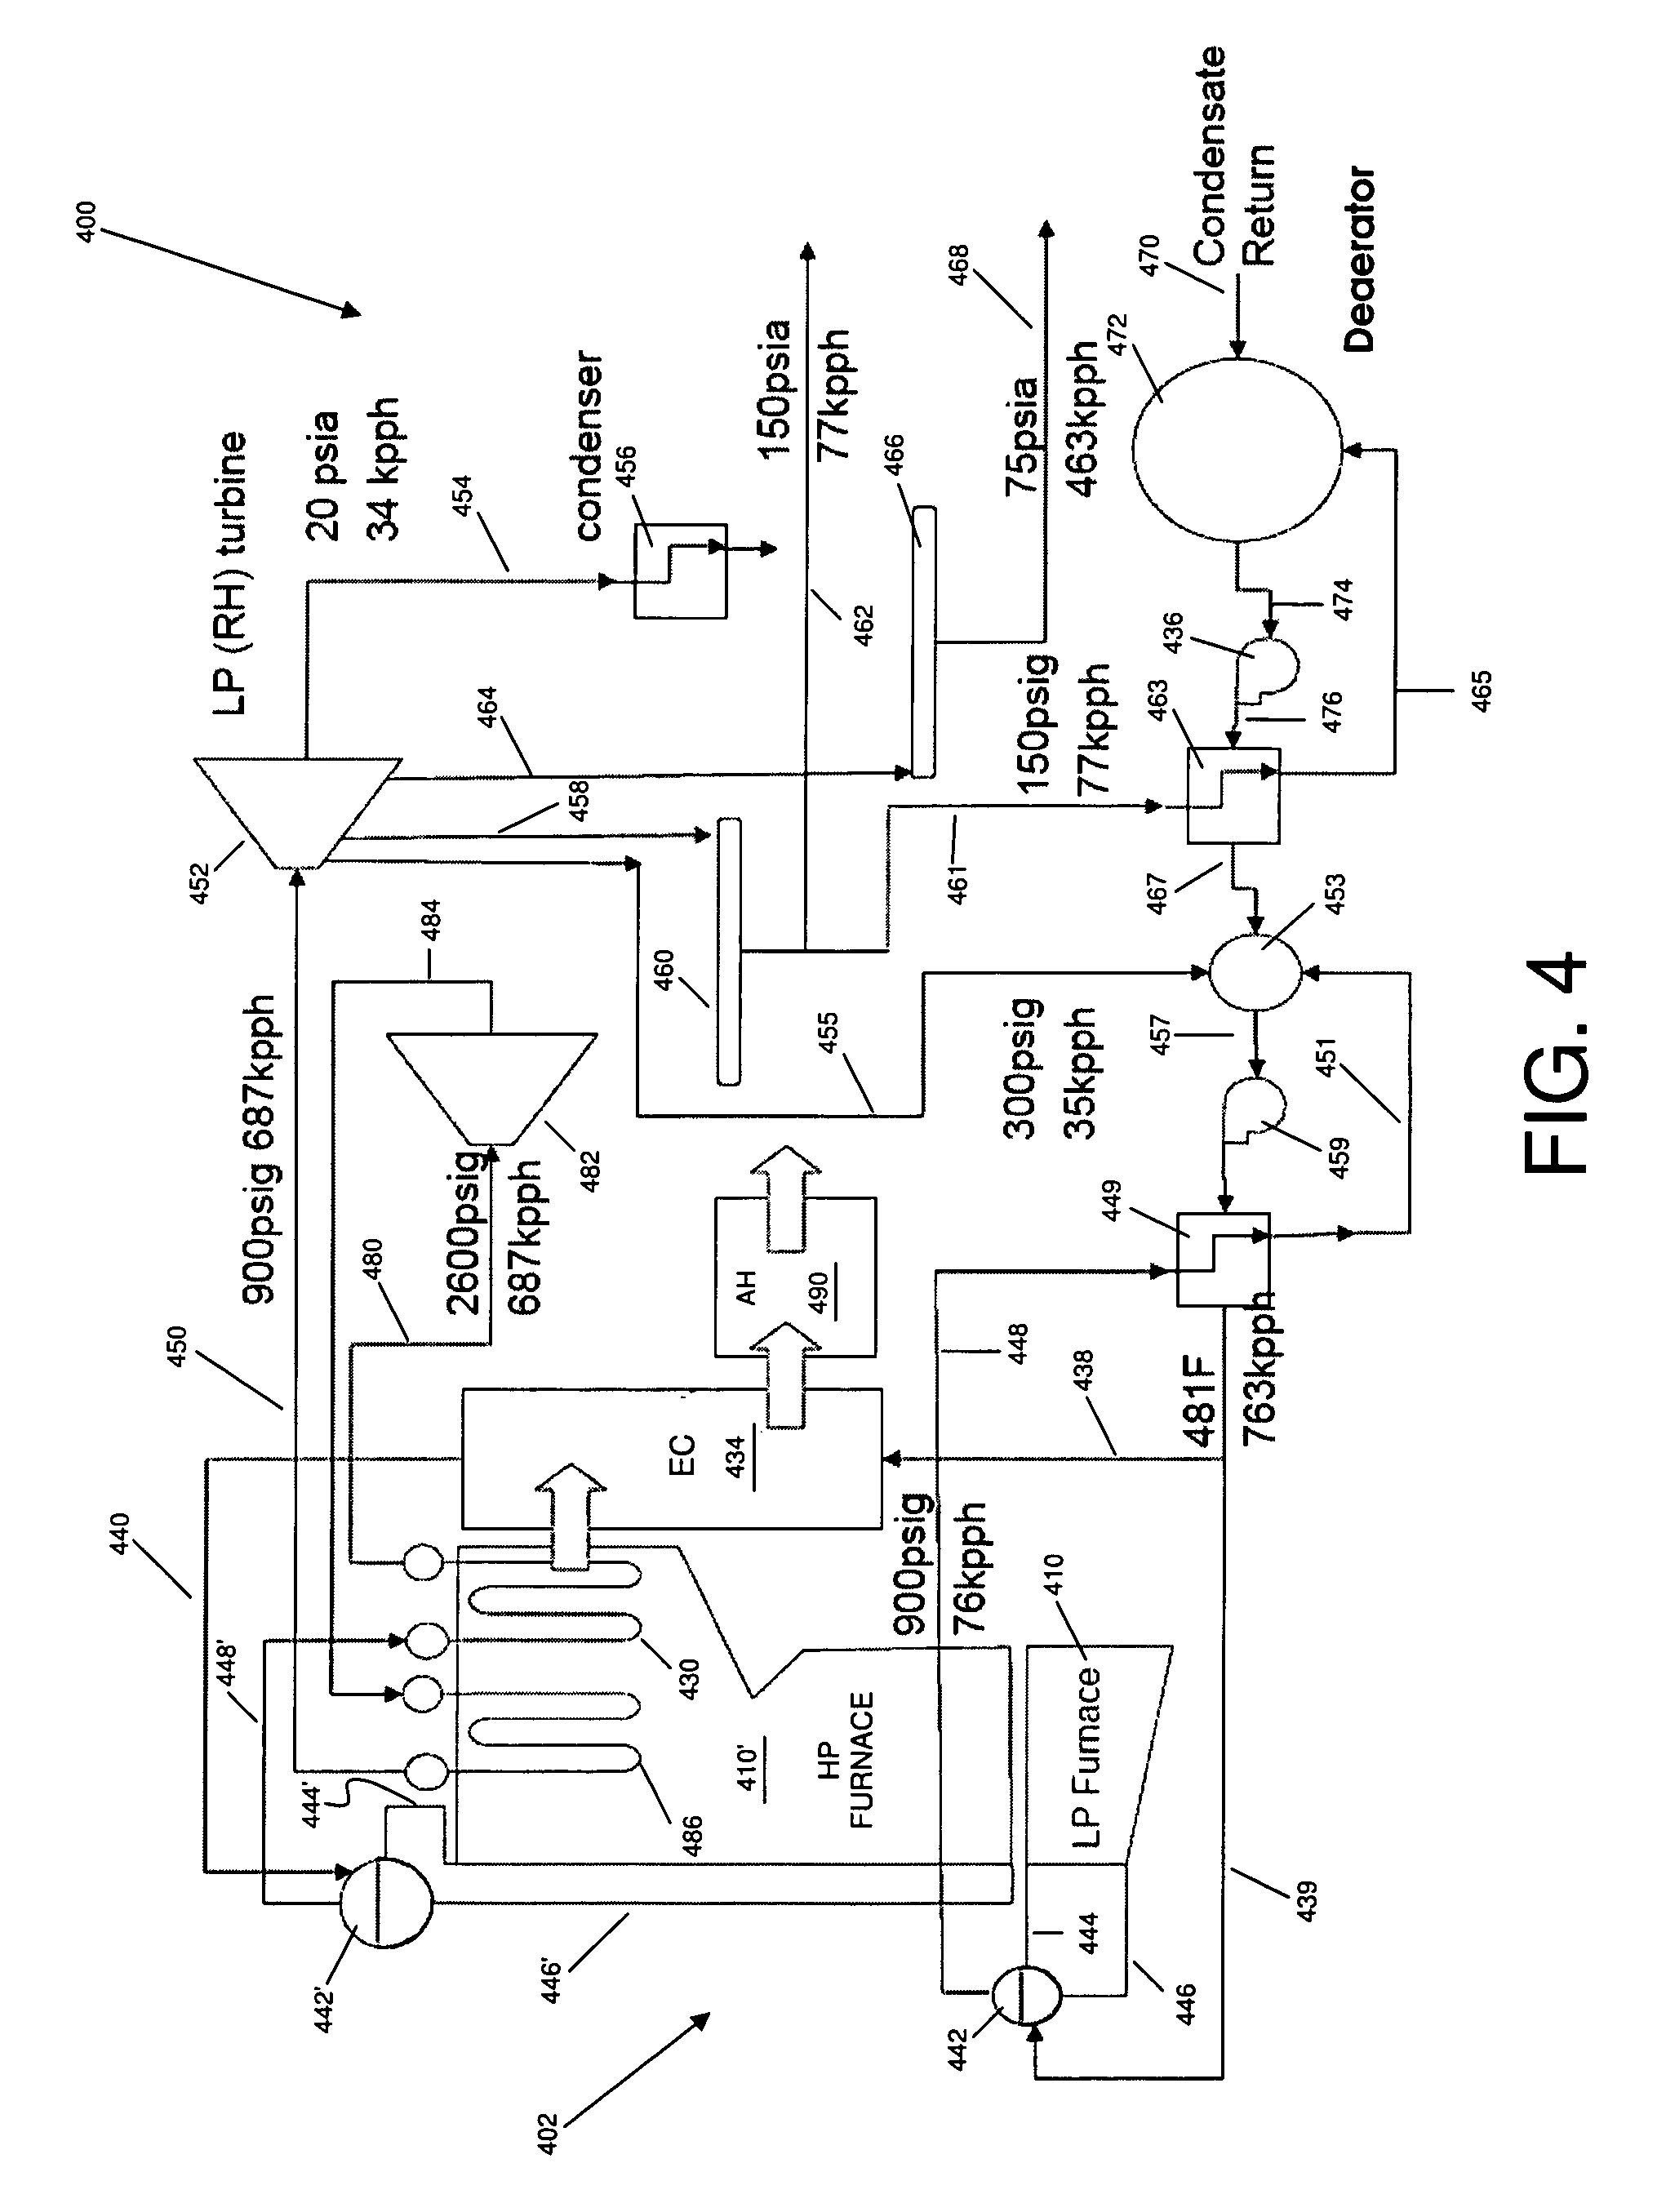 Patent US Enhanced steam cycle utilizing a dual pressure